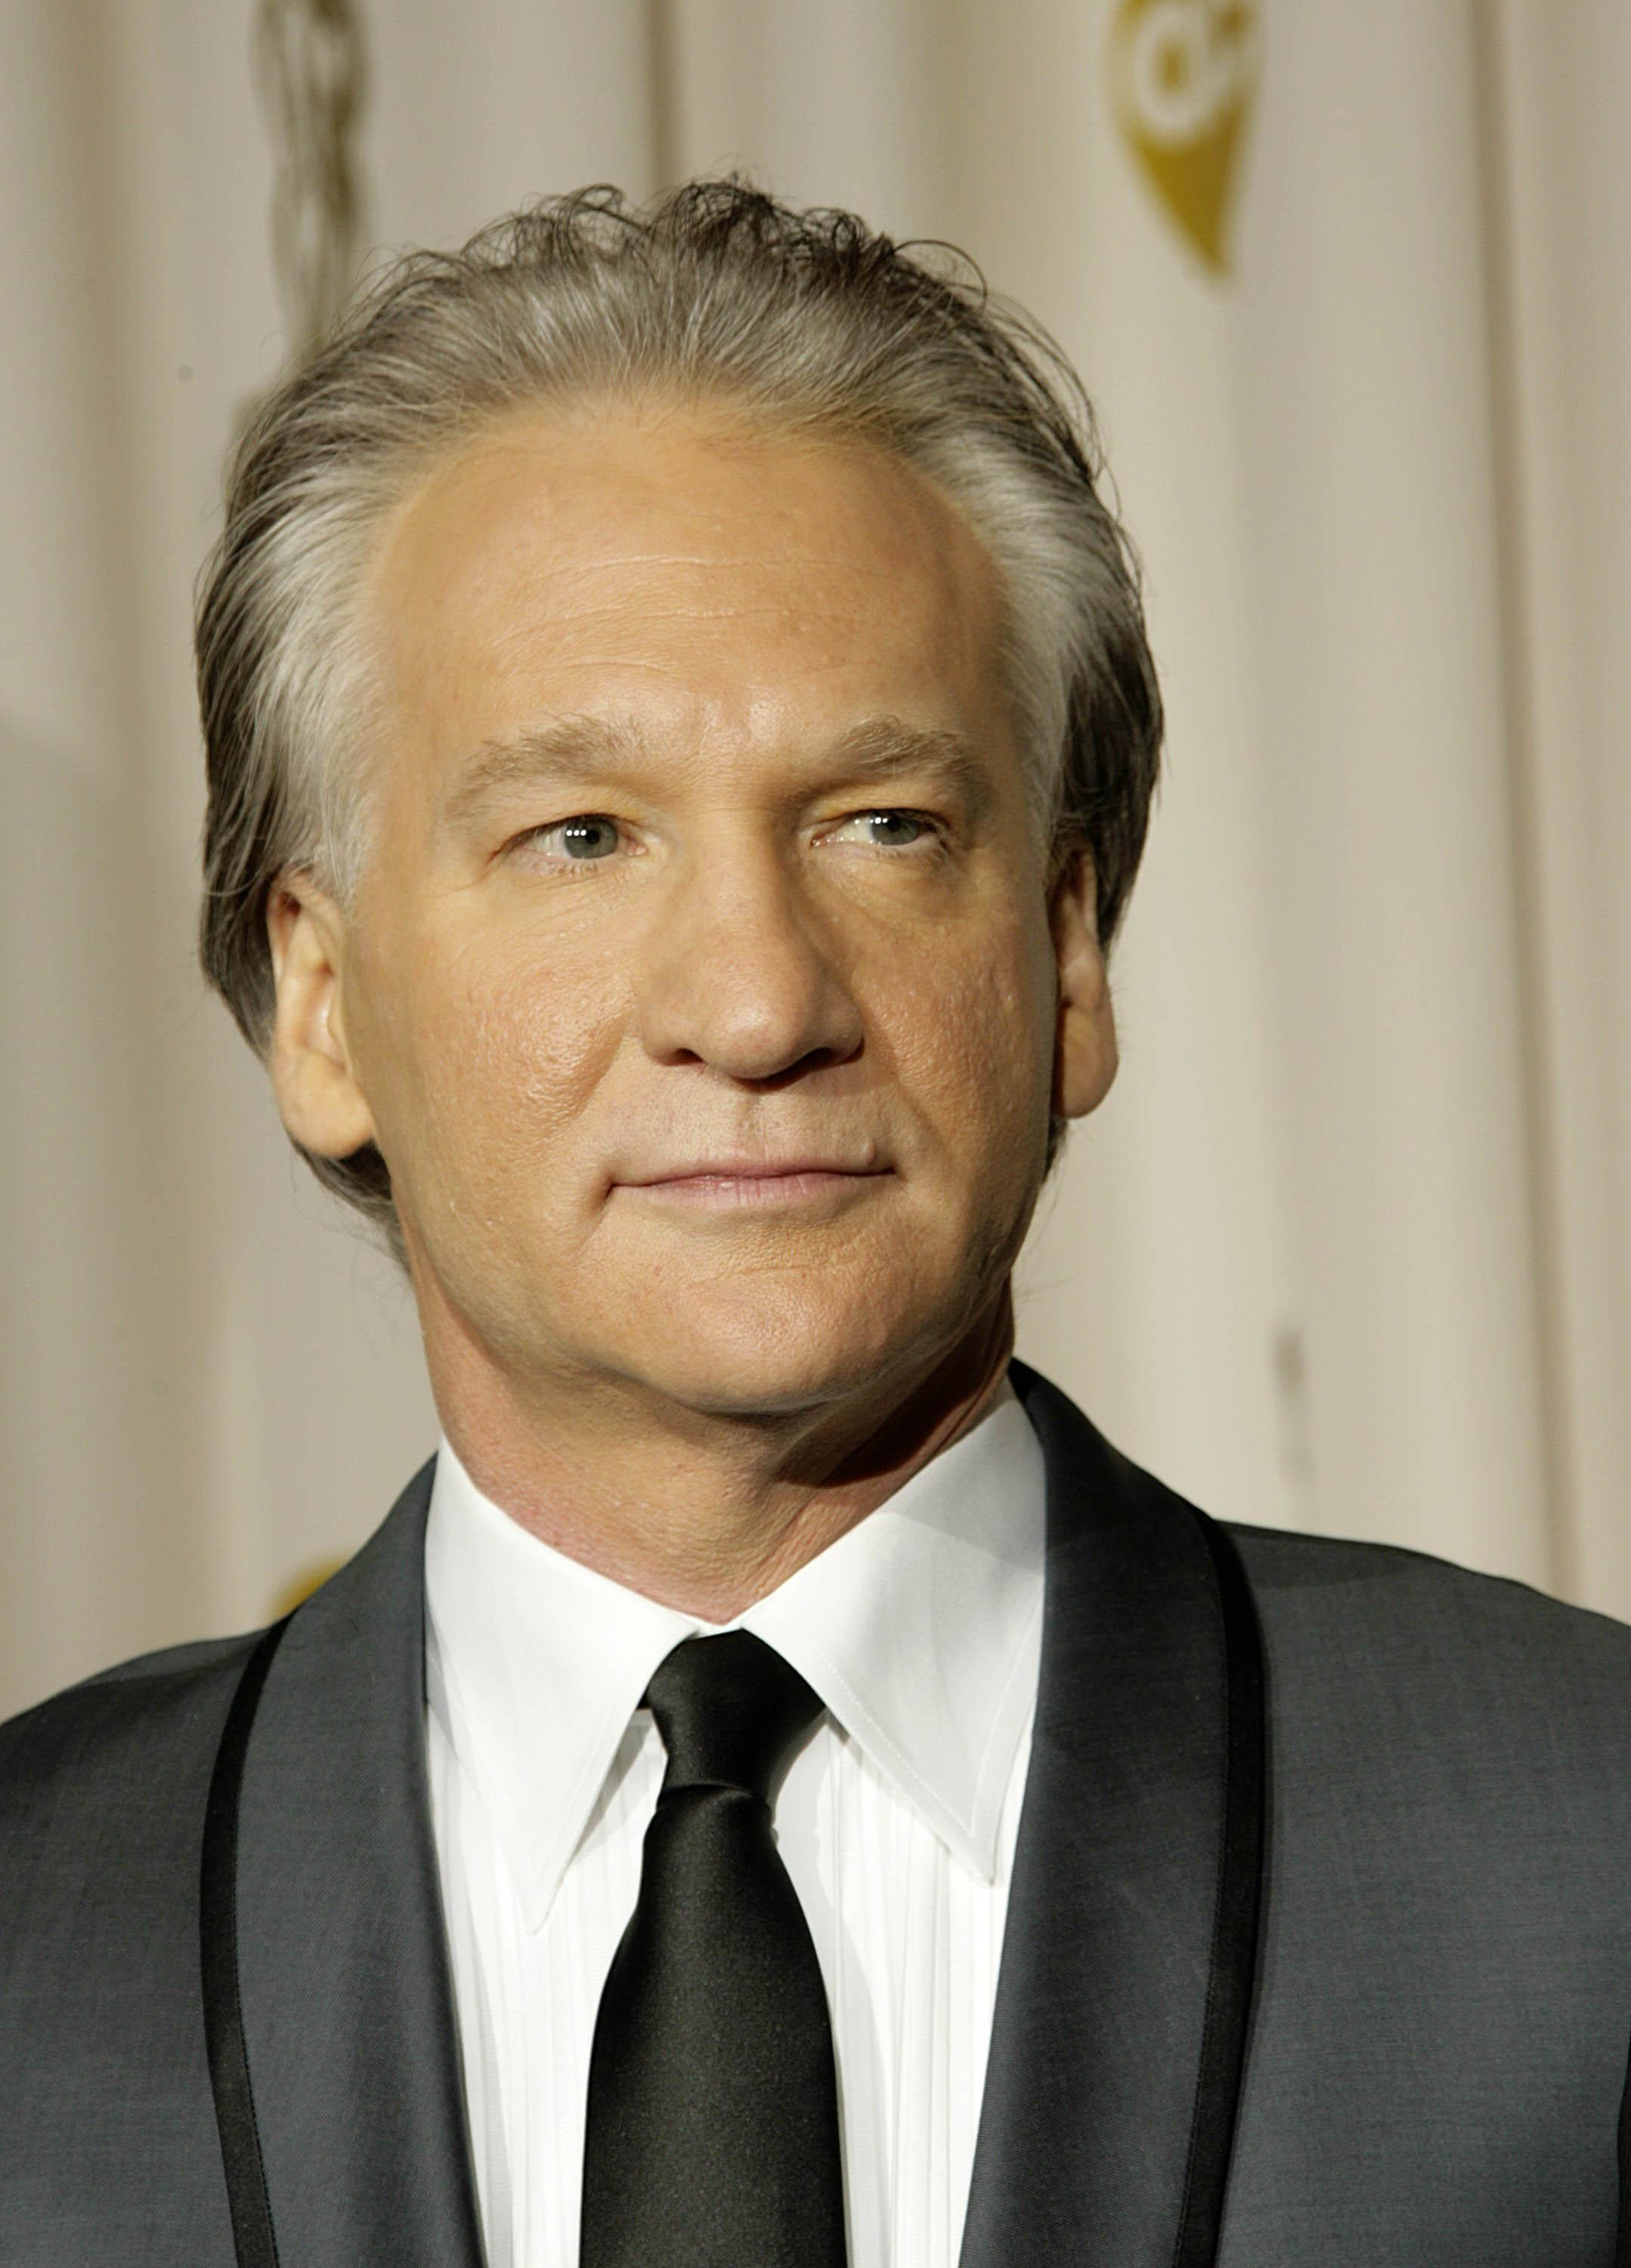 Bill Maher poses backstage at the 81st annual Academy Awards in Hollywood, California, Sunday, February 22, 2009. (Francis Specker/Landov/MCT)